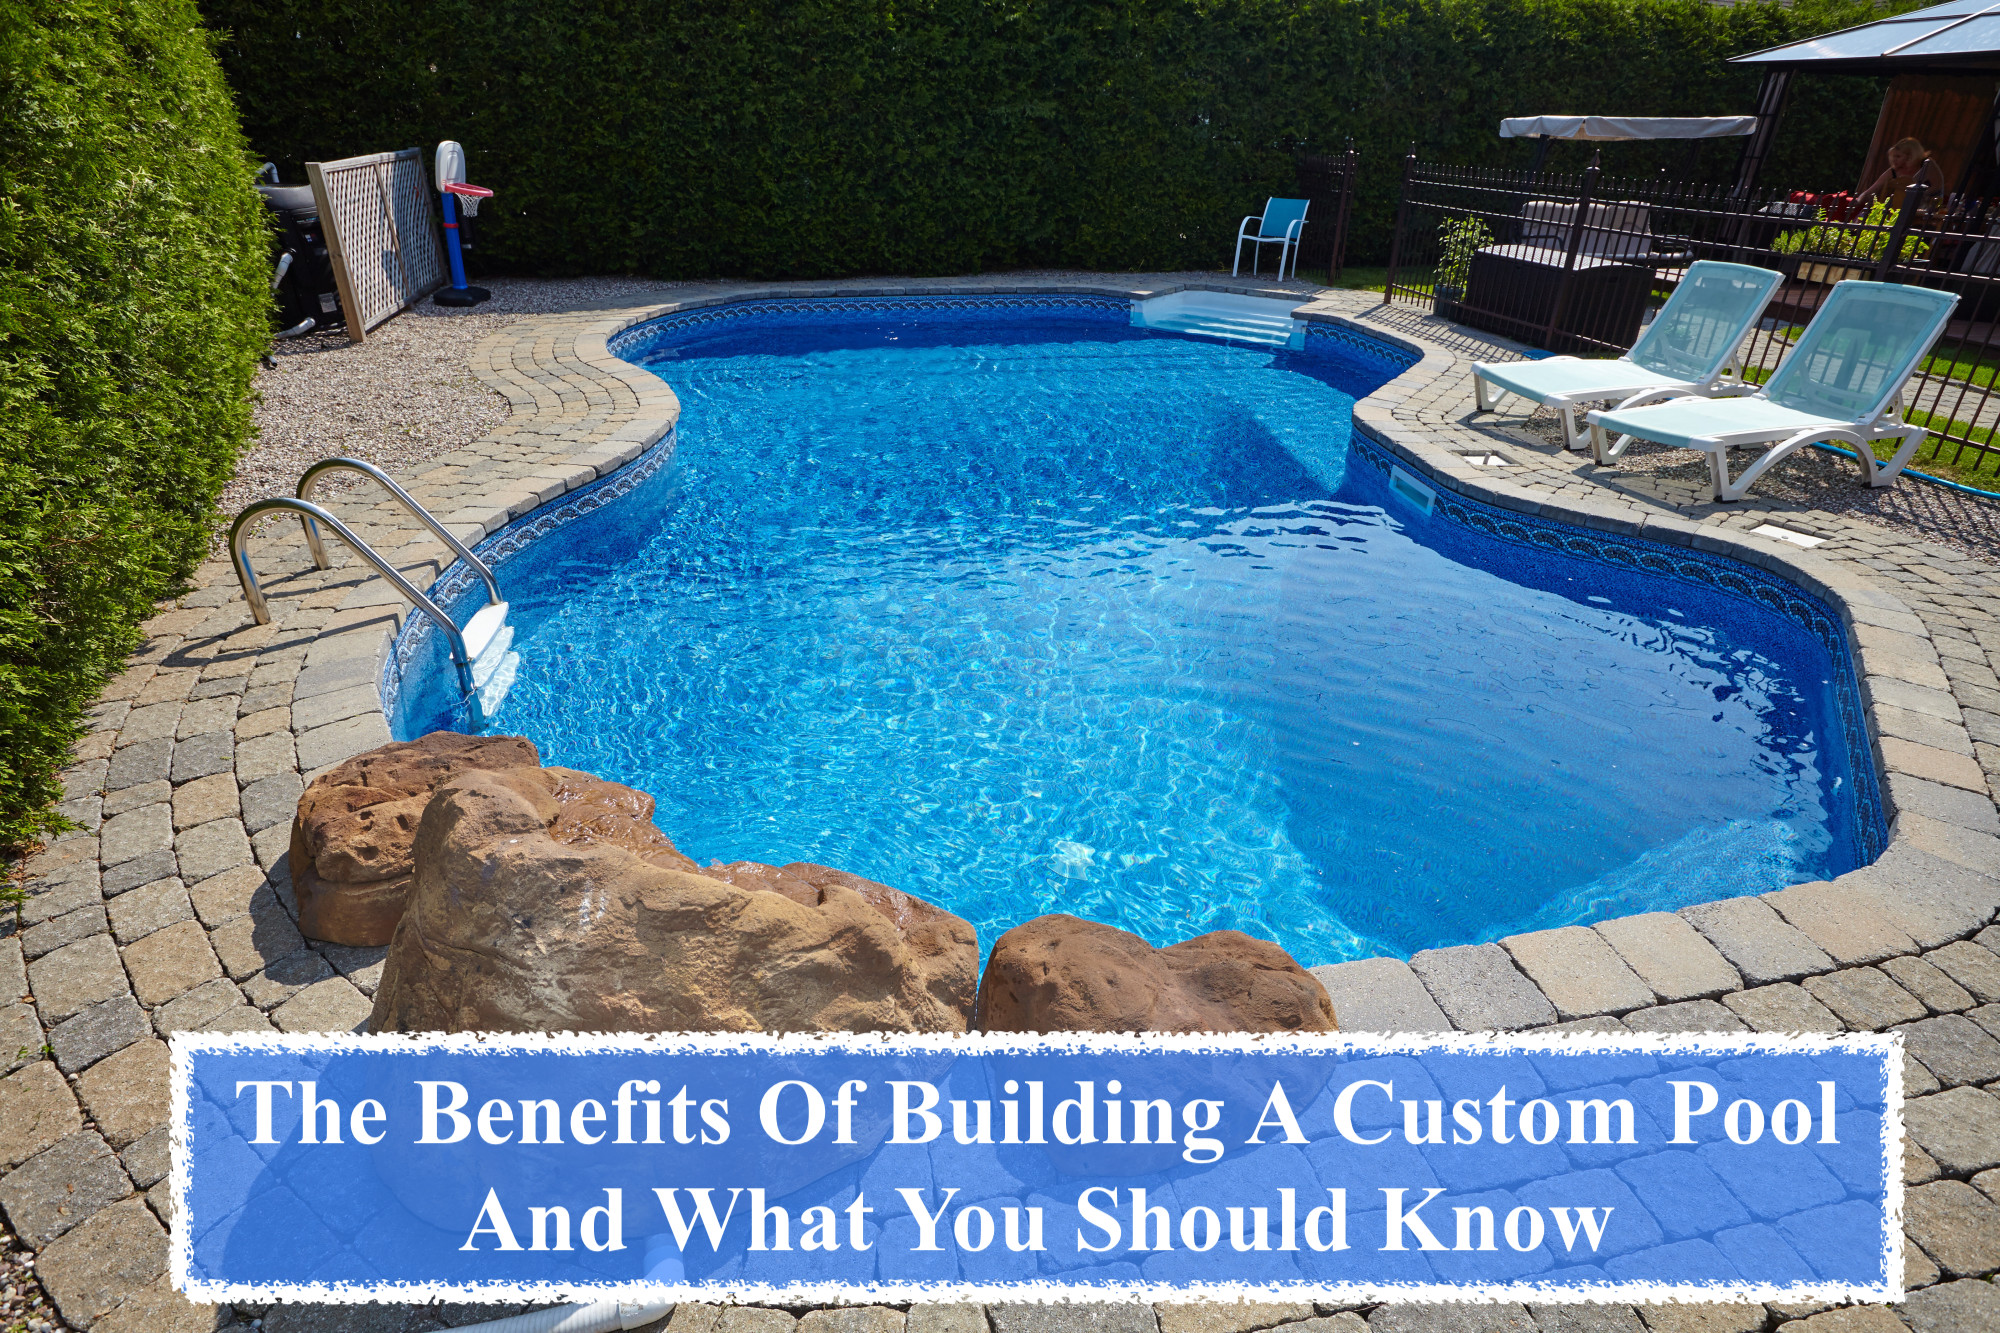 The Benefits Of Building A Custom Pool And What You Should Know